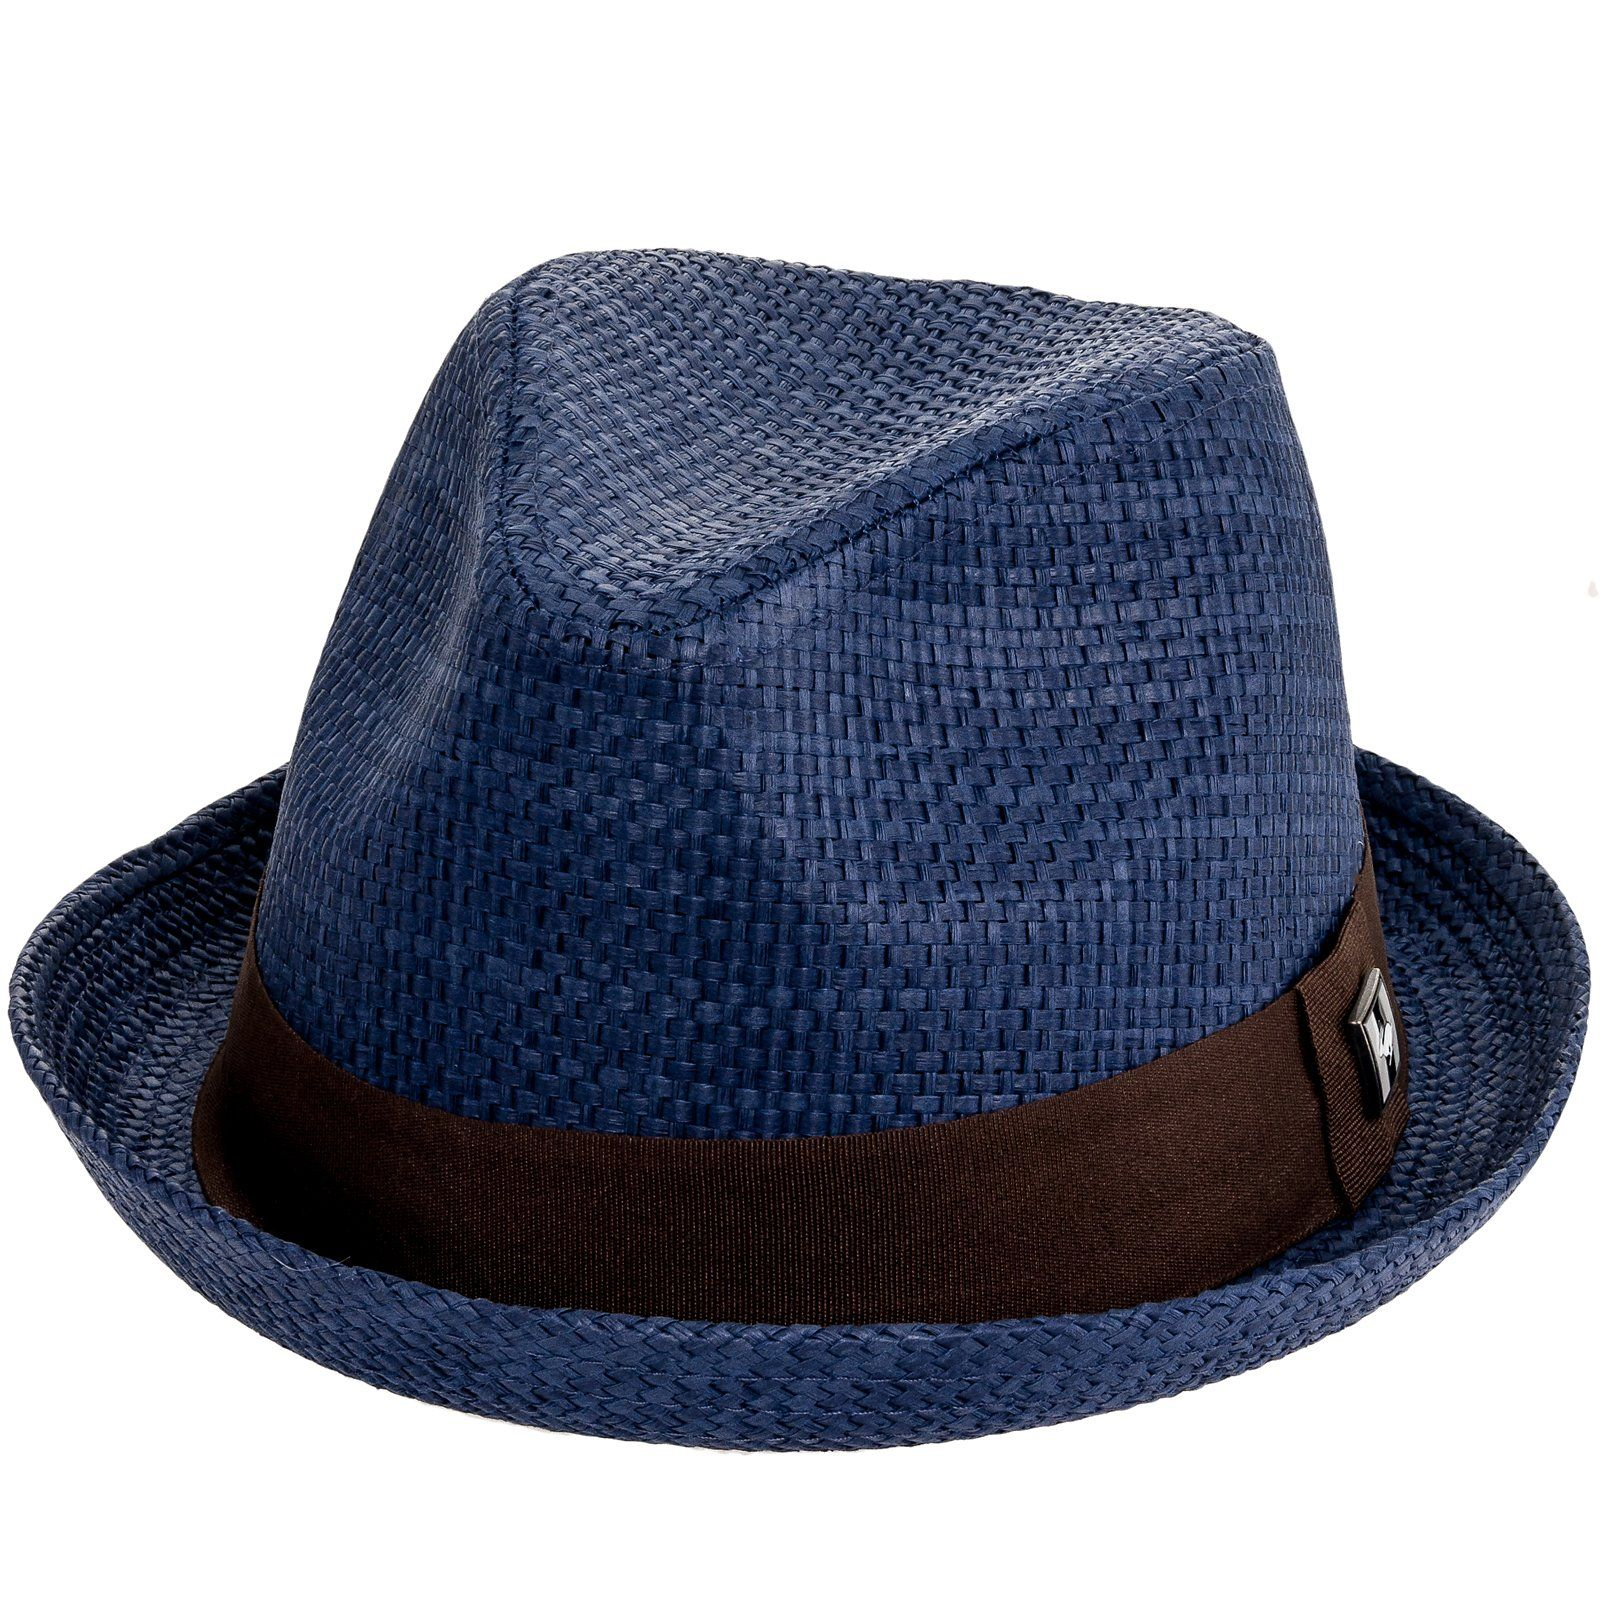 c3402b10a1d083 Peter Grimm Mens Navy Blue Depp Fedora Hat | For the Dome in 2019 ...